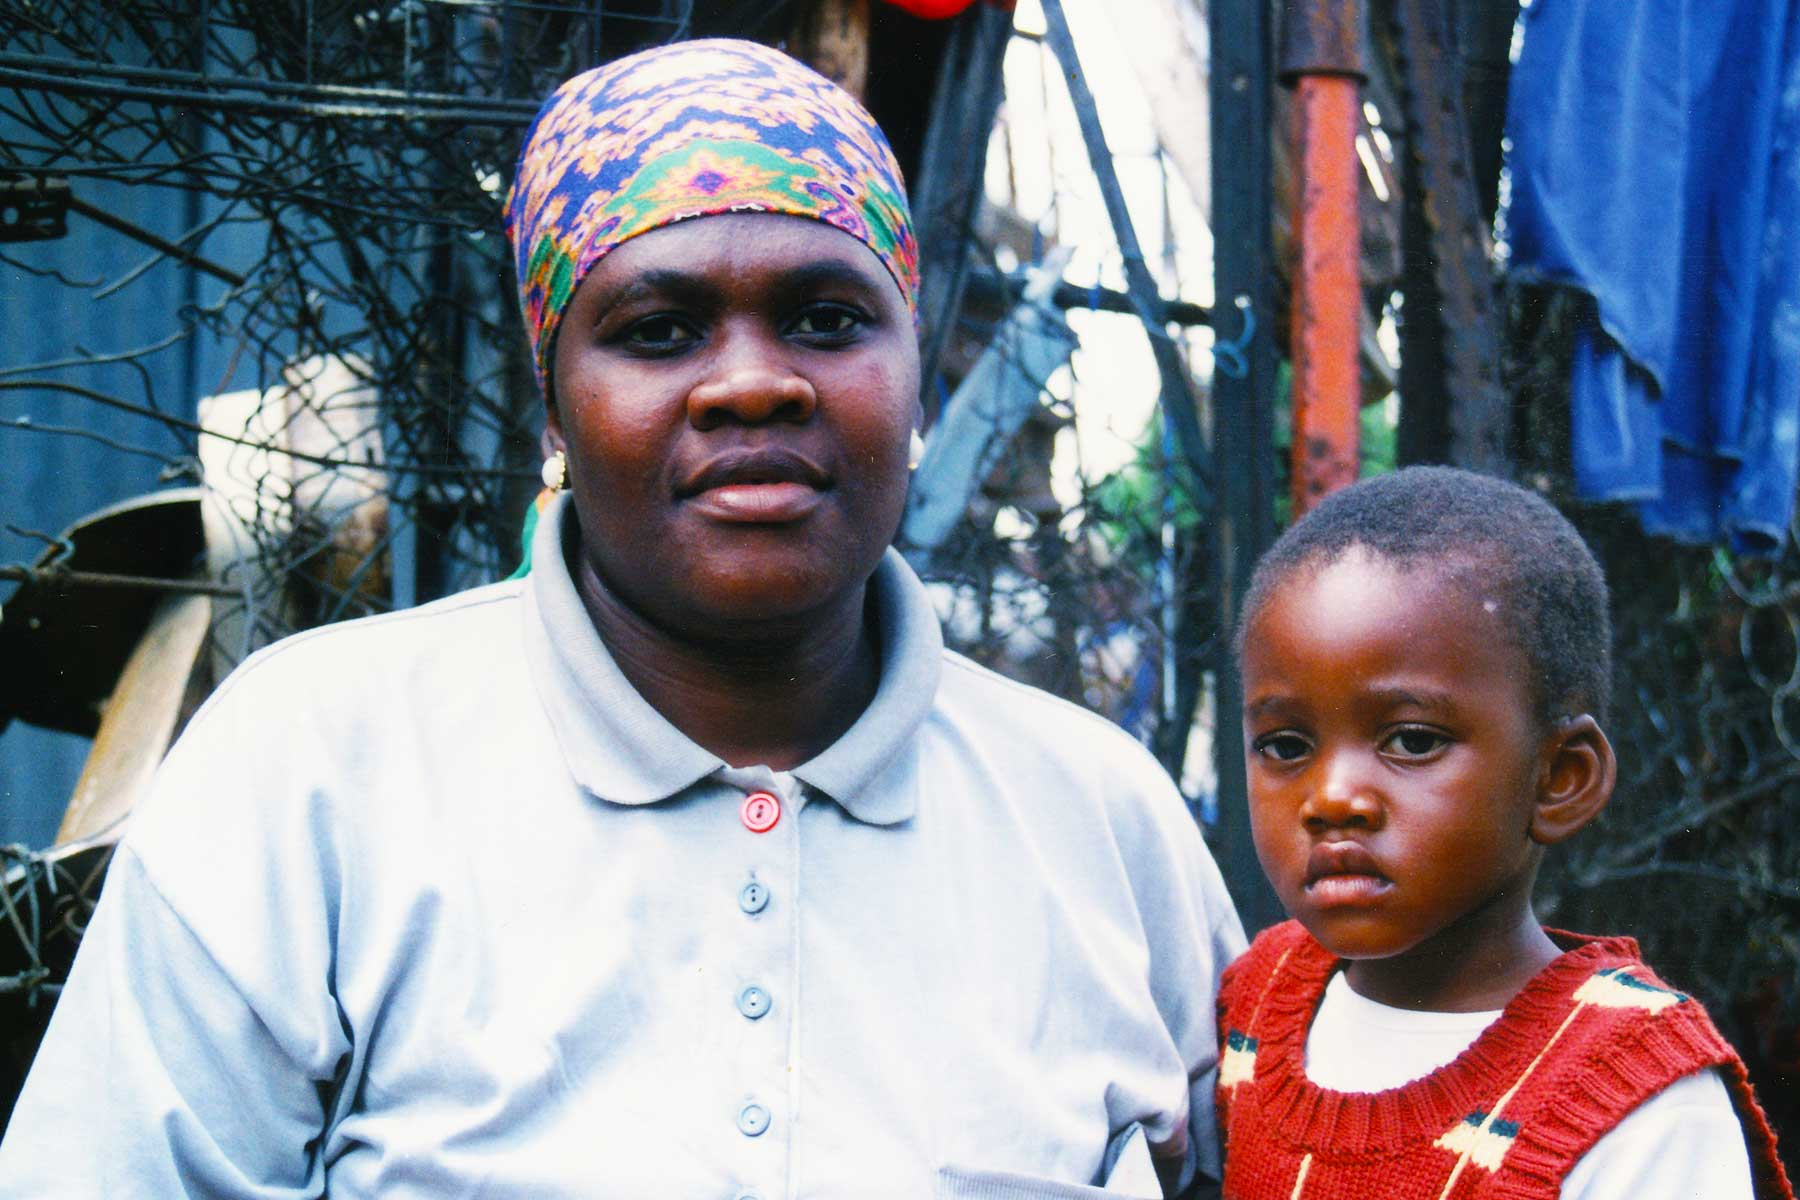 Xhosa mother and child at Soweto, South Africa   Steven Andrew Martin   School for International Training   SIT Study Abroad   Photo Journal